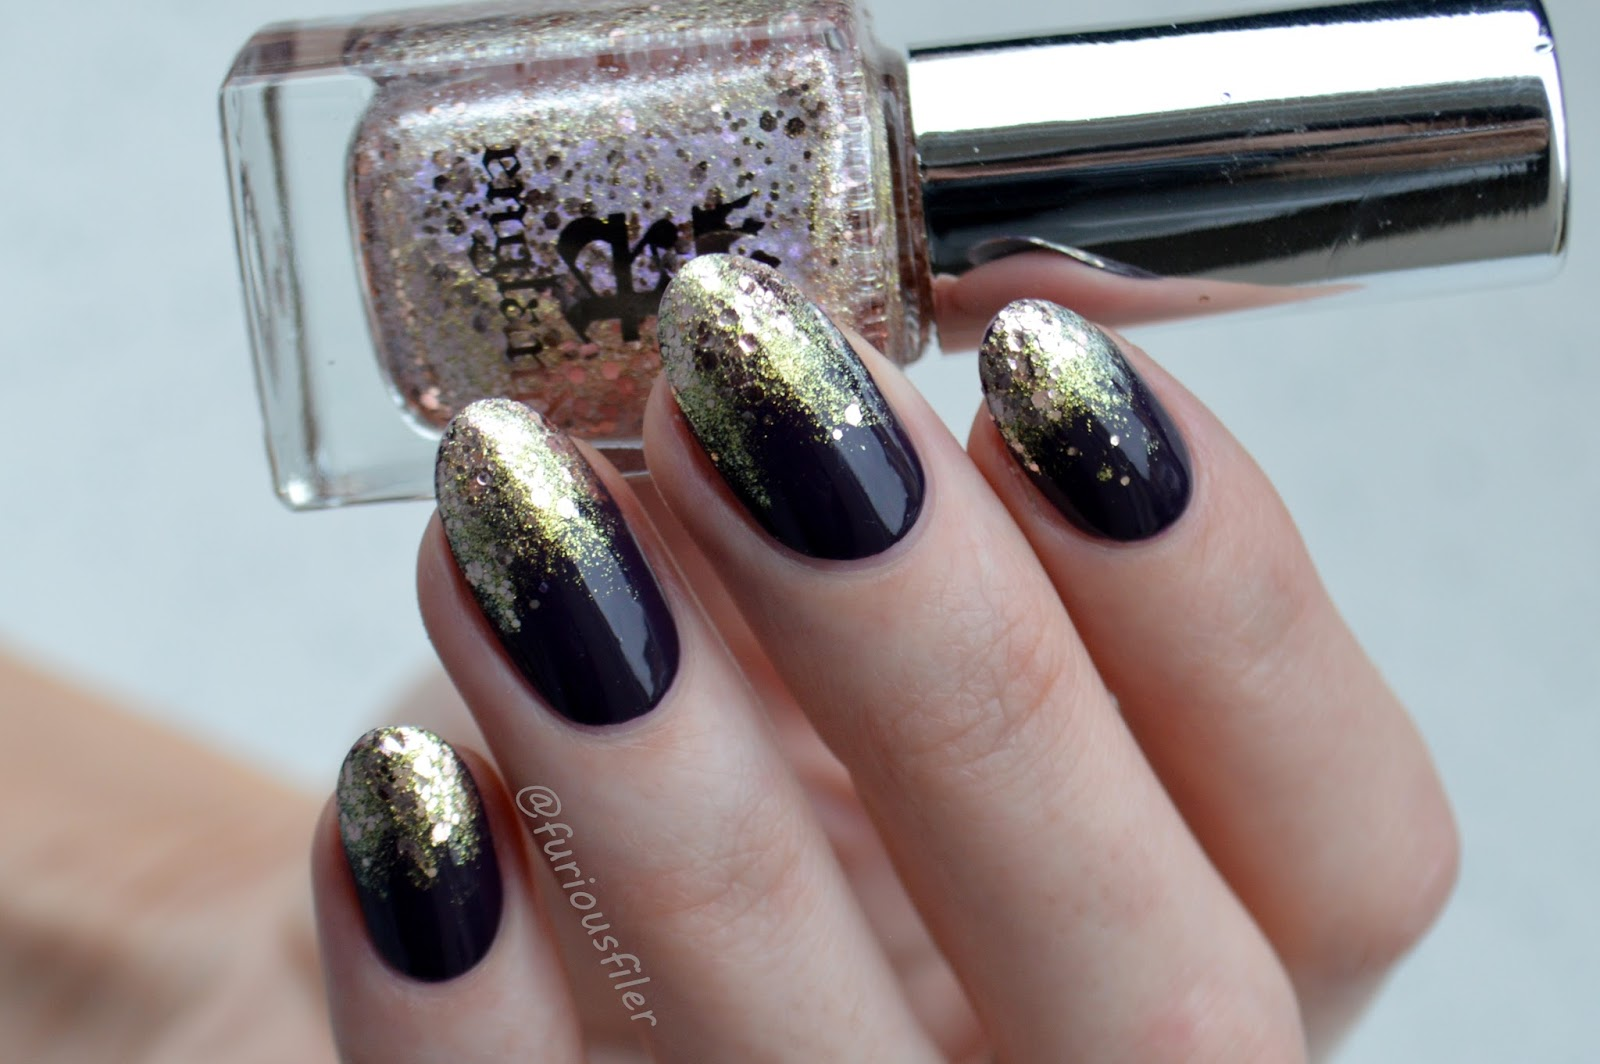 A England Heavenly Layers Nail Art And Review Furious Filer